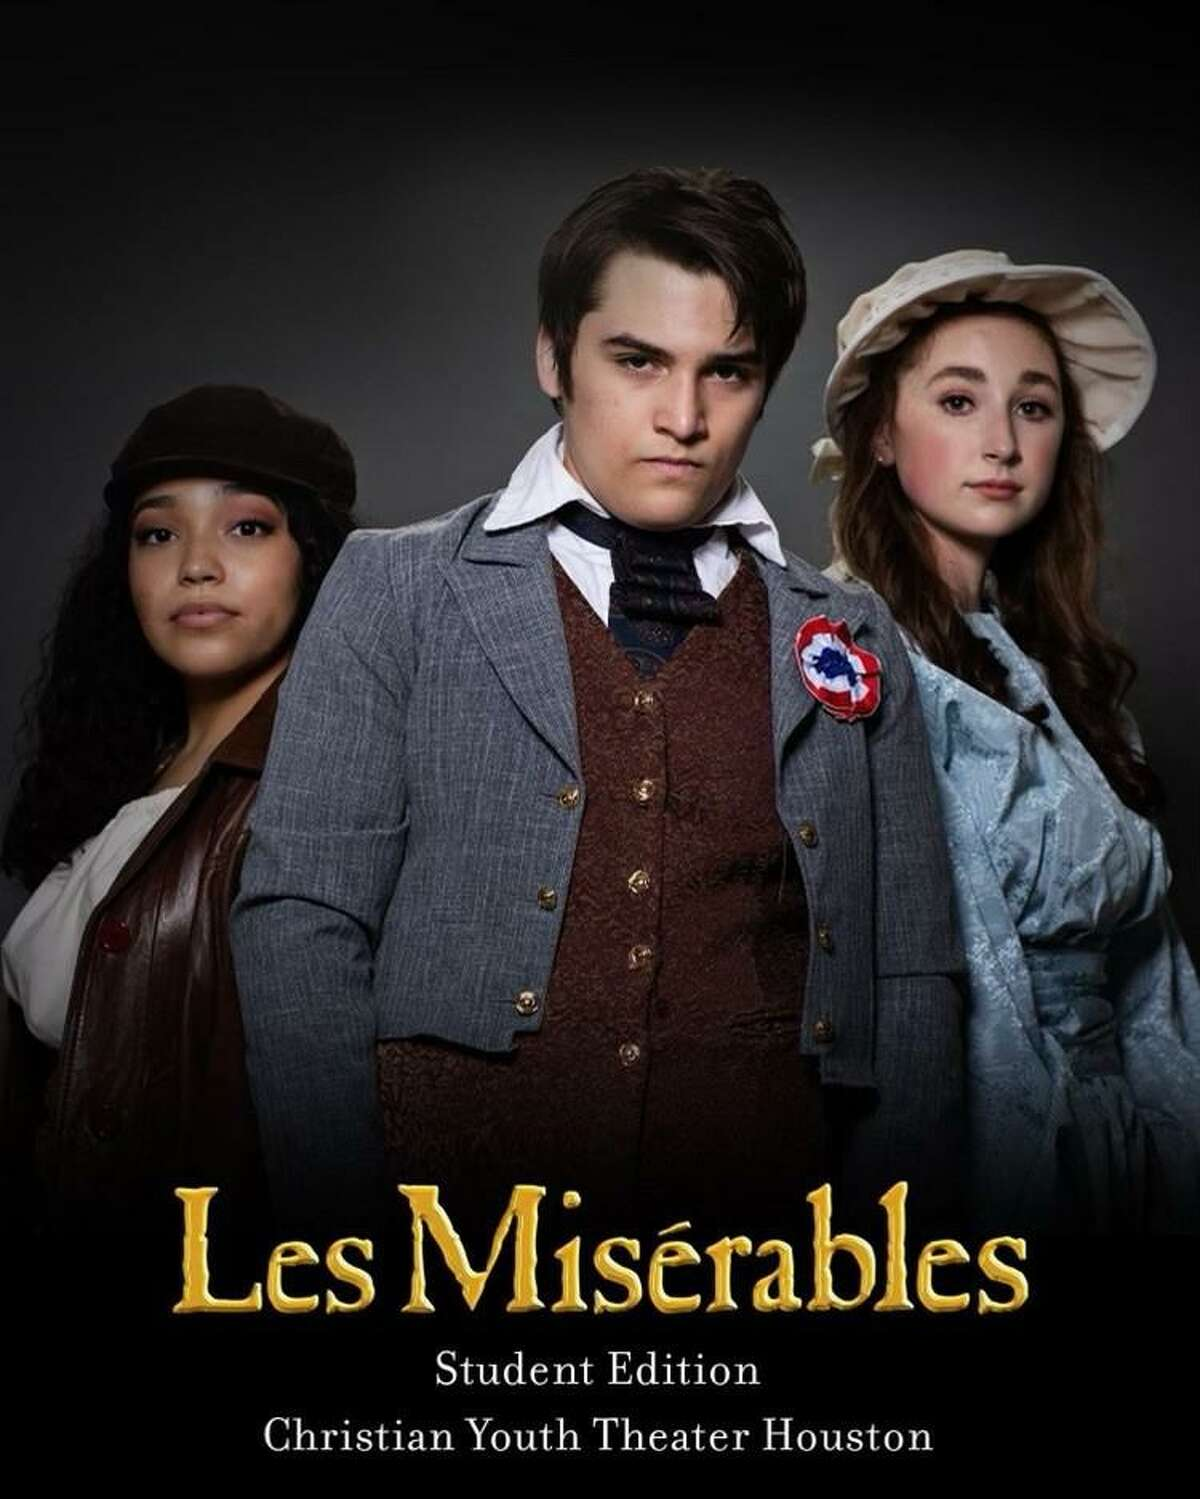 """Christian Youth Theater opens """"Les Miserables School Edition"""" May 14 at the Crighton Theatre. More tickets have been opened for this show. Visit cythouston.org for tickets."""